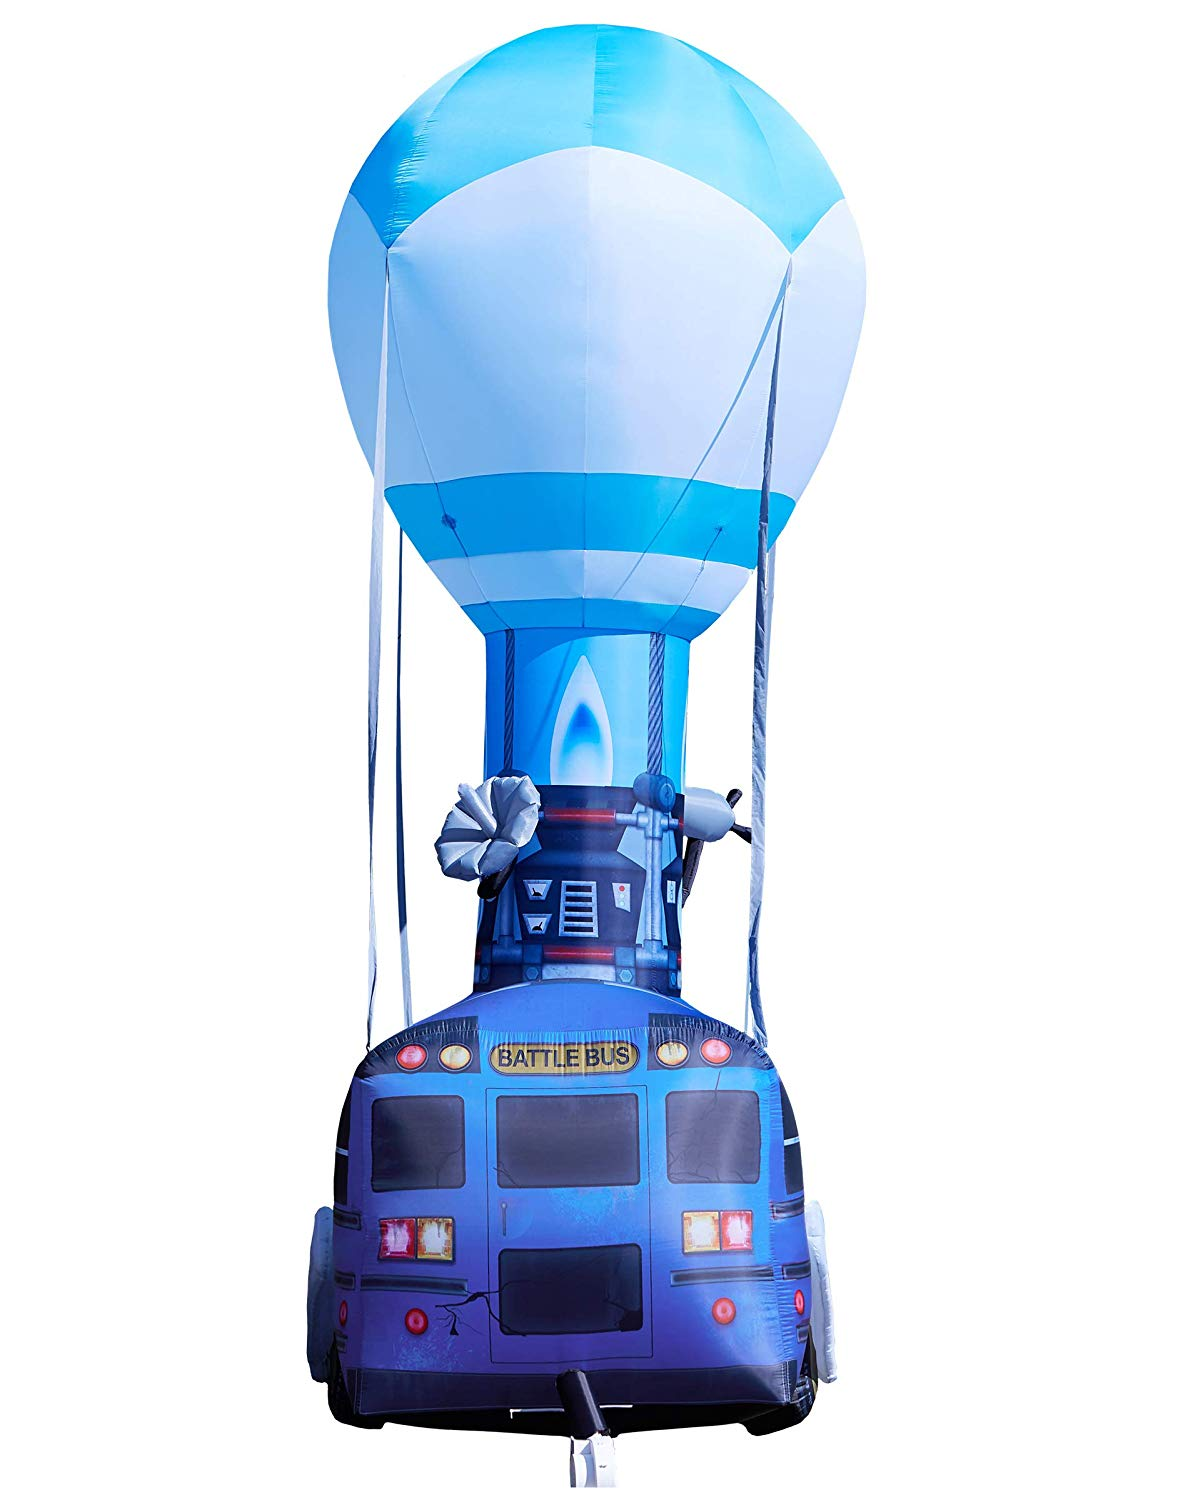 Giant Inflatable Fortnite Battle Bus 4